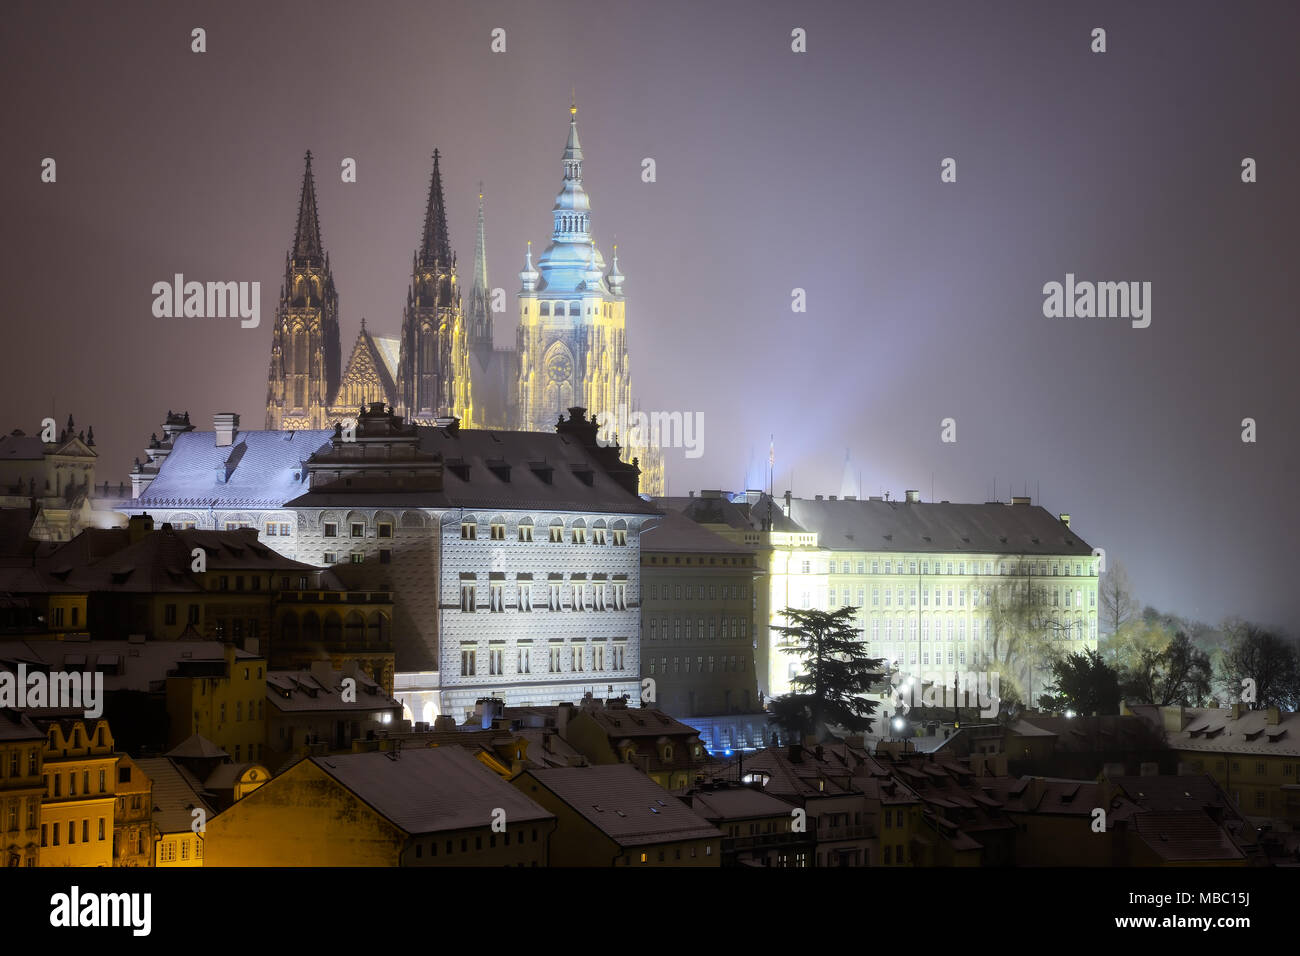 Saint Vitus Cathedral. Snowy atmosphere during winter night. Church covered with snow. Deatil of gothic building. Unesco, Prague, Czech republic - Stock Image